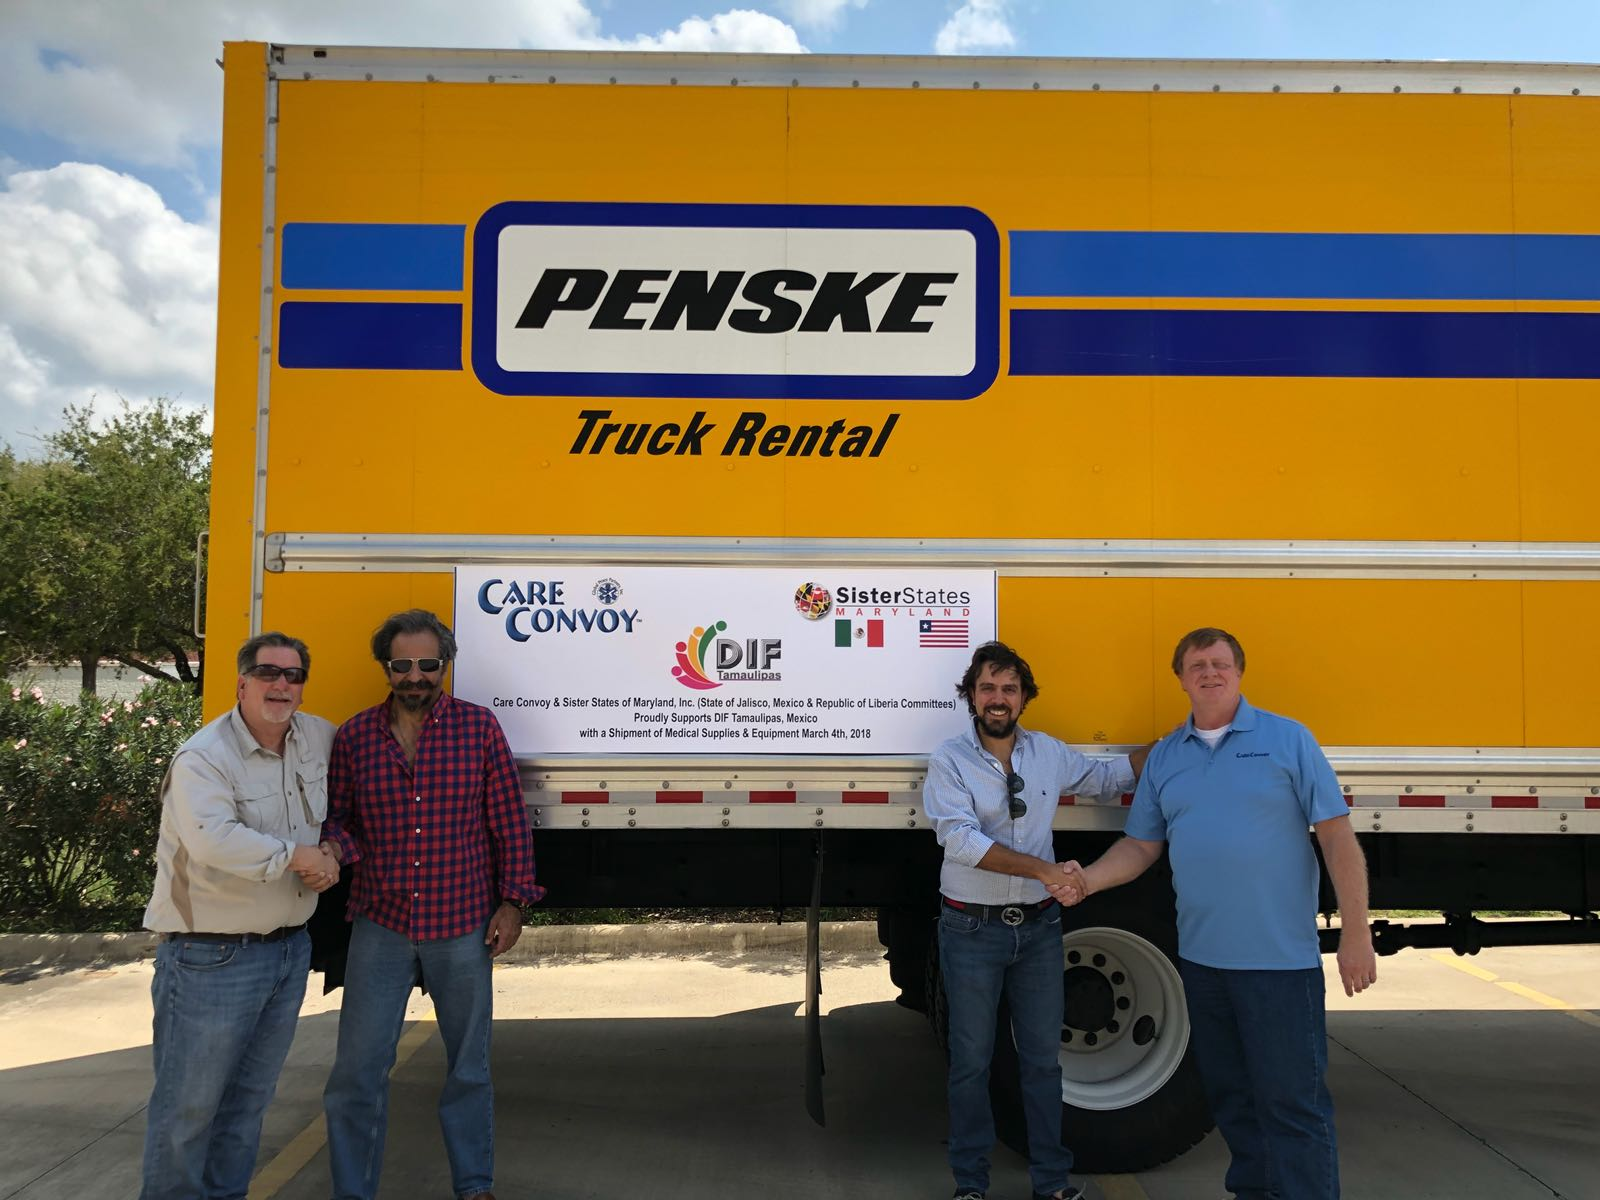 Care Convoy and Maryland Sister State representatives pose in front of their sign and a rental truck with a shipment of medical supplies to Tamaulipas, Mexico